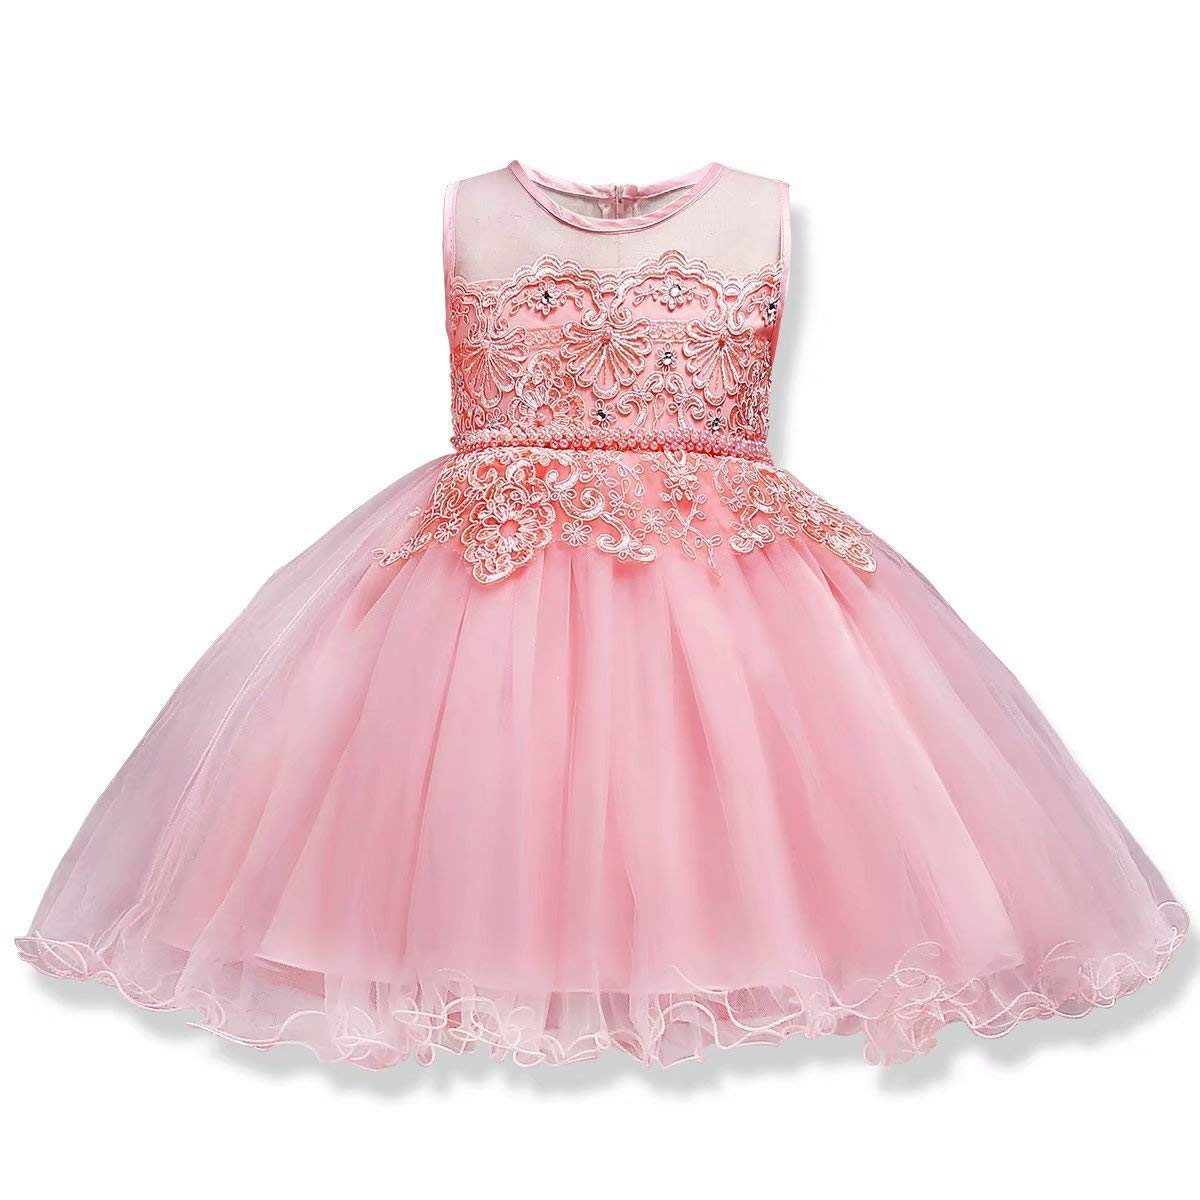 Big Girls Dresses Teen Princess Party Birthday Prom Gowns Sleeveless Knee Length 7-16 Age of 10 Ten Big Girl Dresses Size 10-12 Lace Tulle Bridesmaid Ruffles Dresses for Girls 10-12 Pink 130